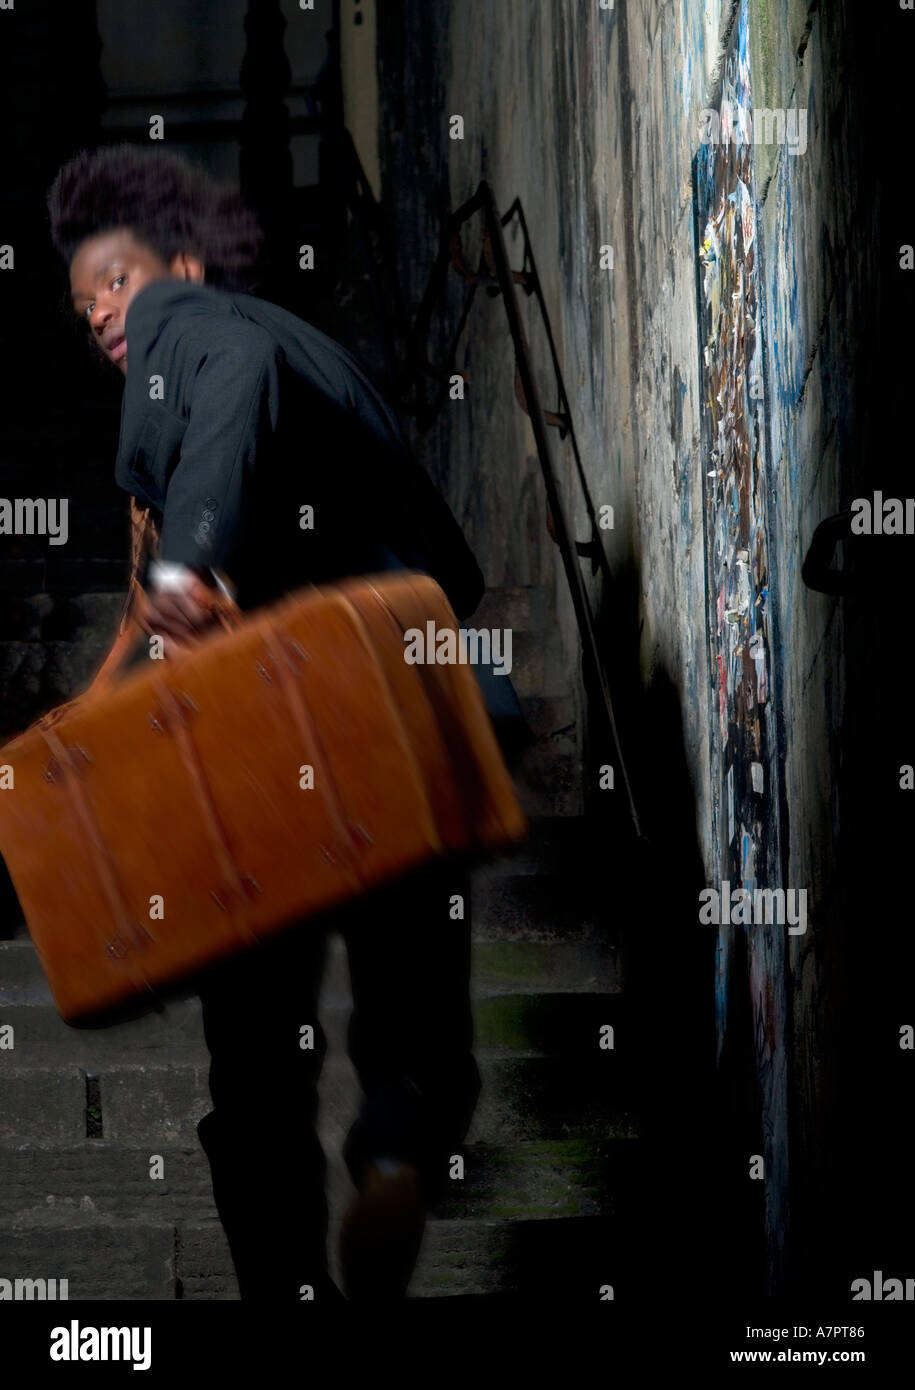 20 s Afro Caribbean male running up a flight of stairs holding a brown leather suitcase - Stock Image